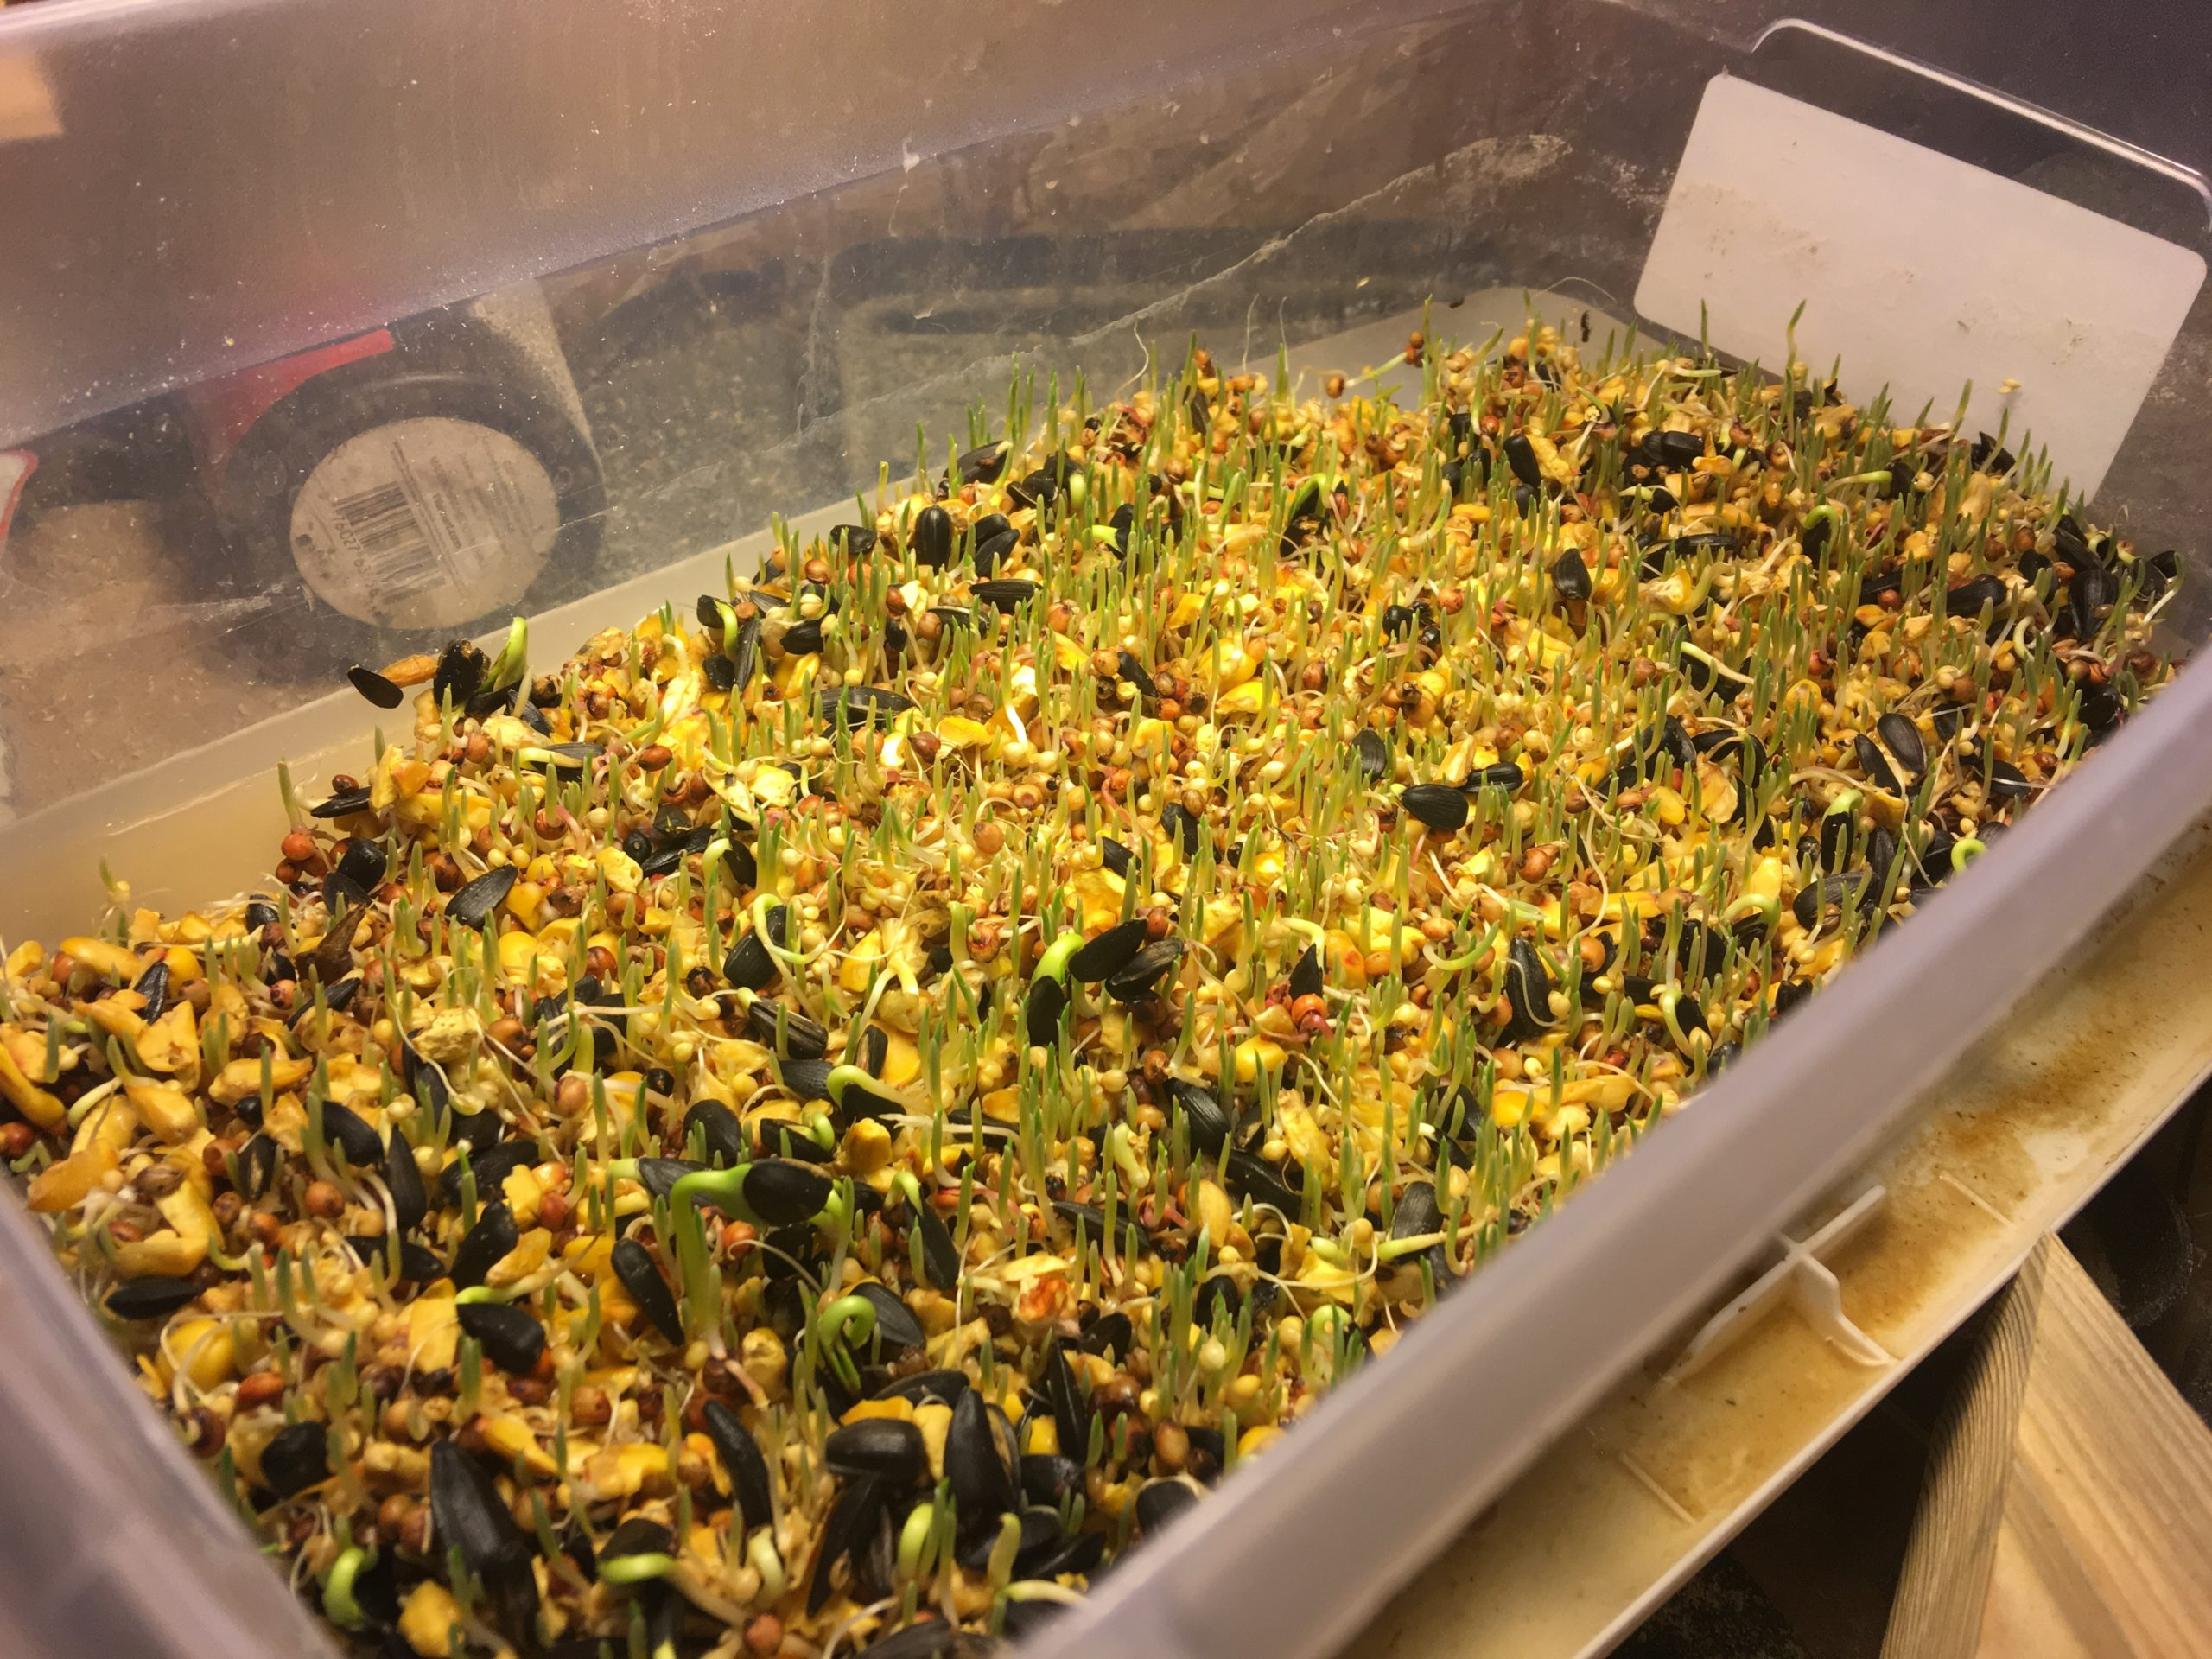 Hydroponic fodder grown from bird seed